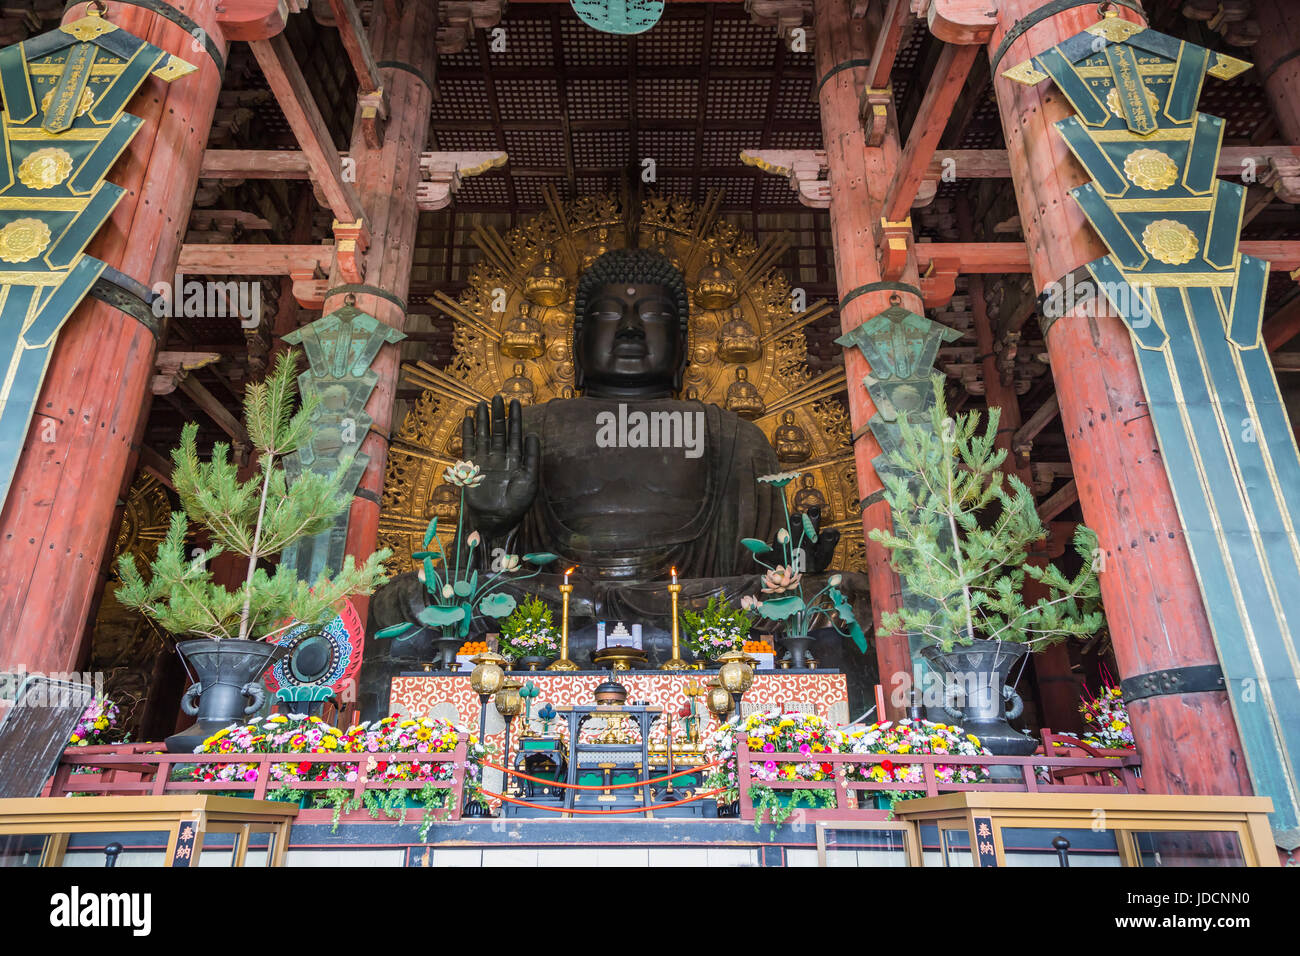 The Hall of the Great Buddha in Nara Park and Tōdai-ji Temple, Nara Prefecture, Honshu Island, Japan. - Stock Image